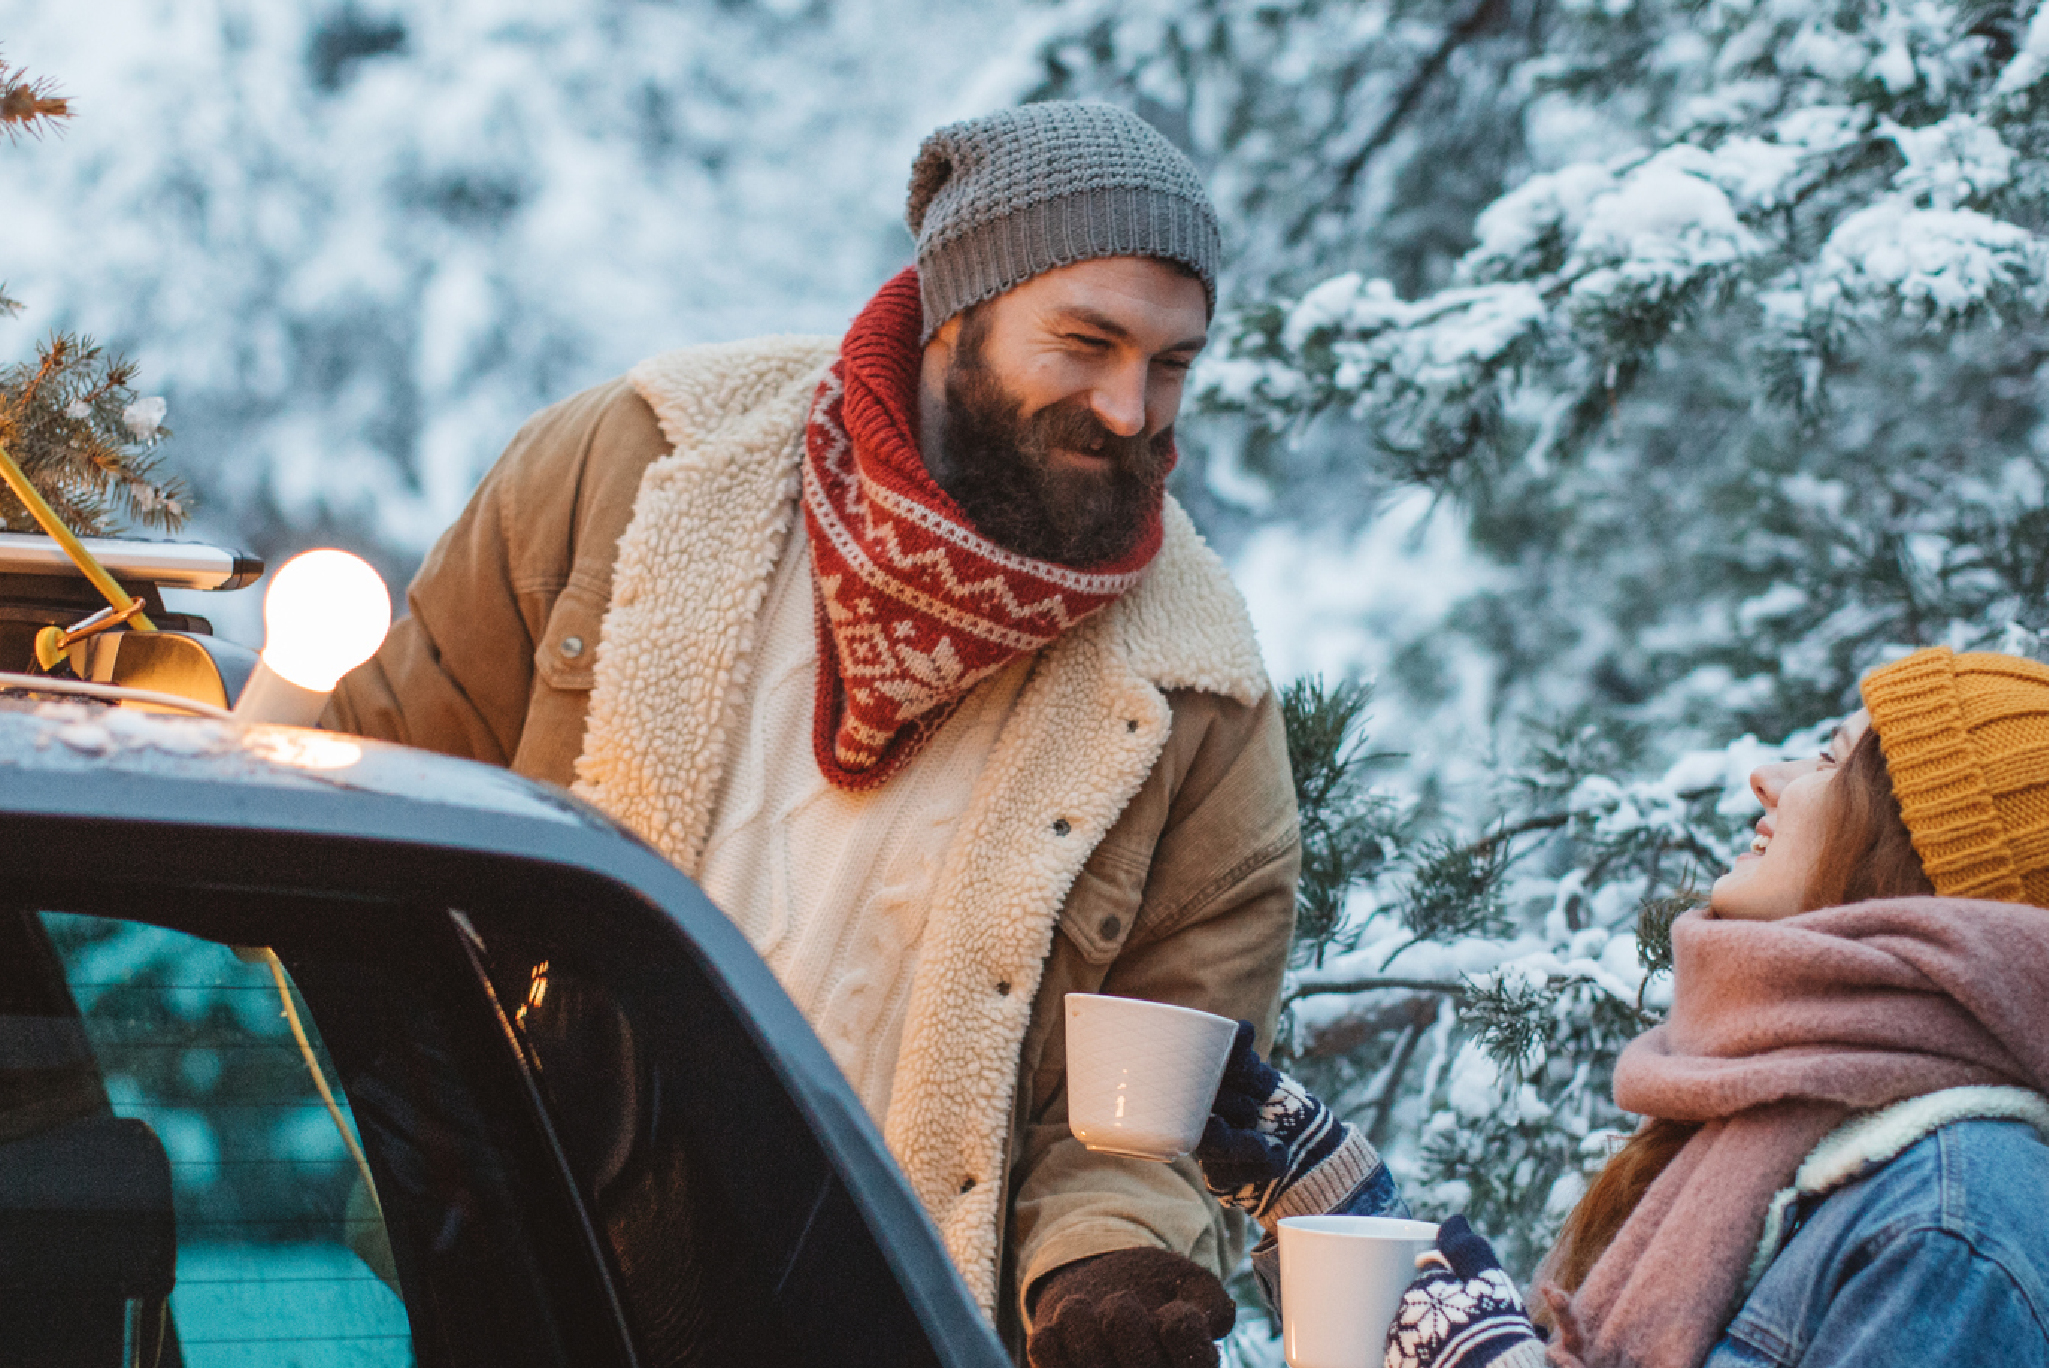 two people bundled up in the snow with a car